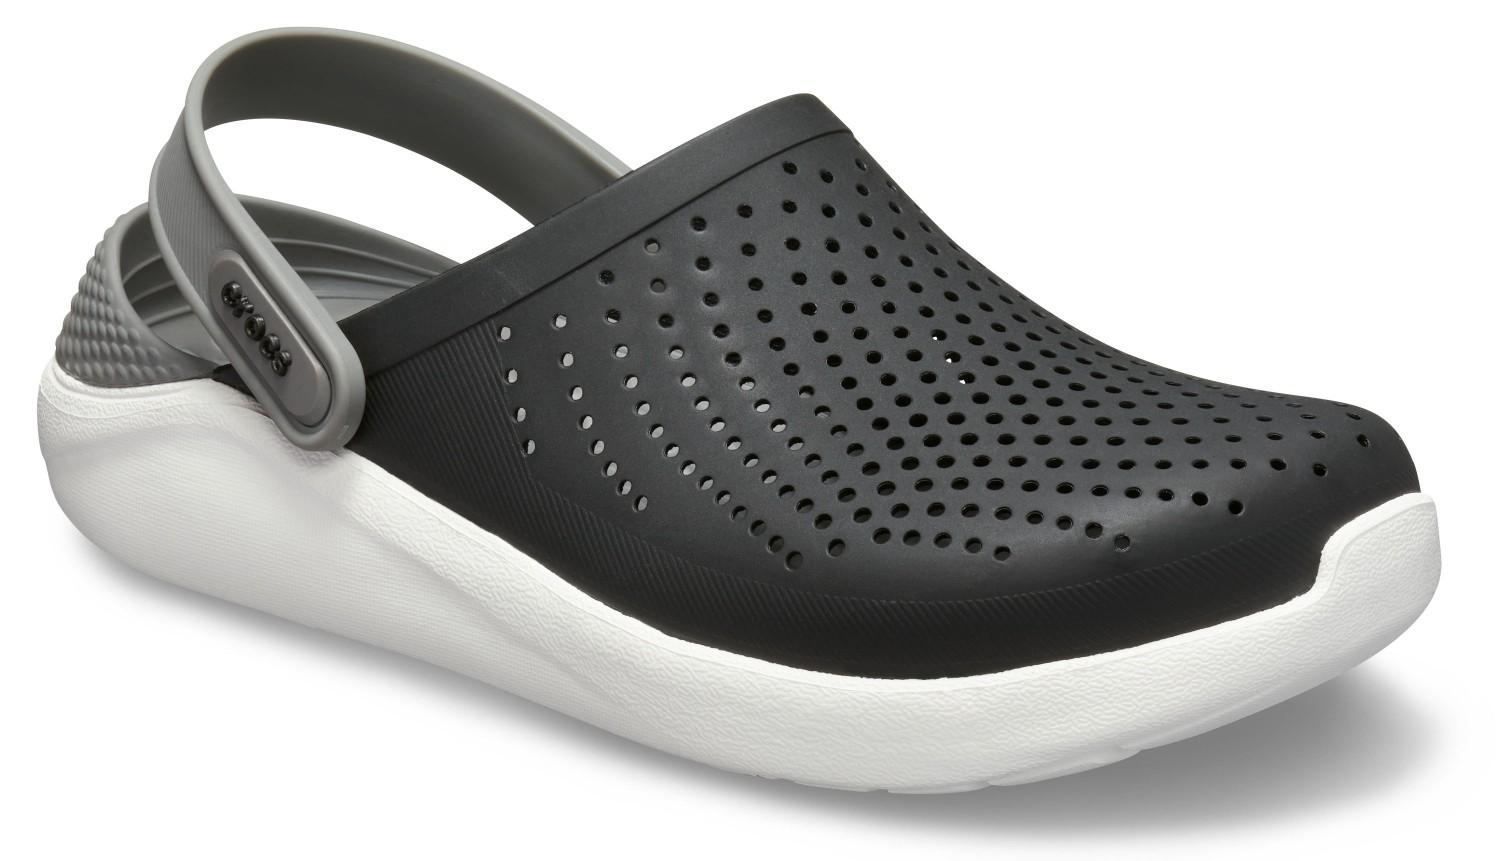 b545931906cc Crocs Philippines  Crocs price list - Crocs Flats